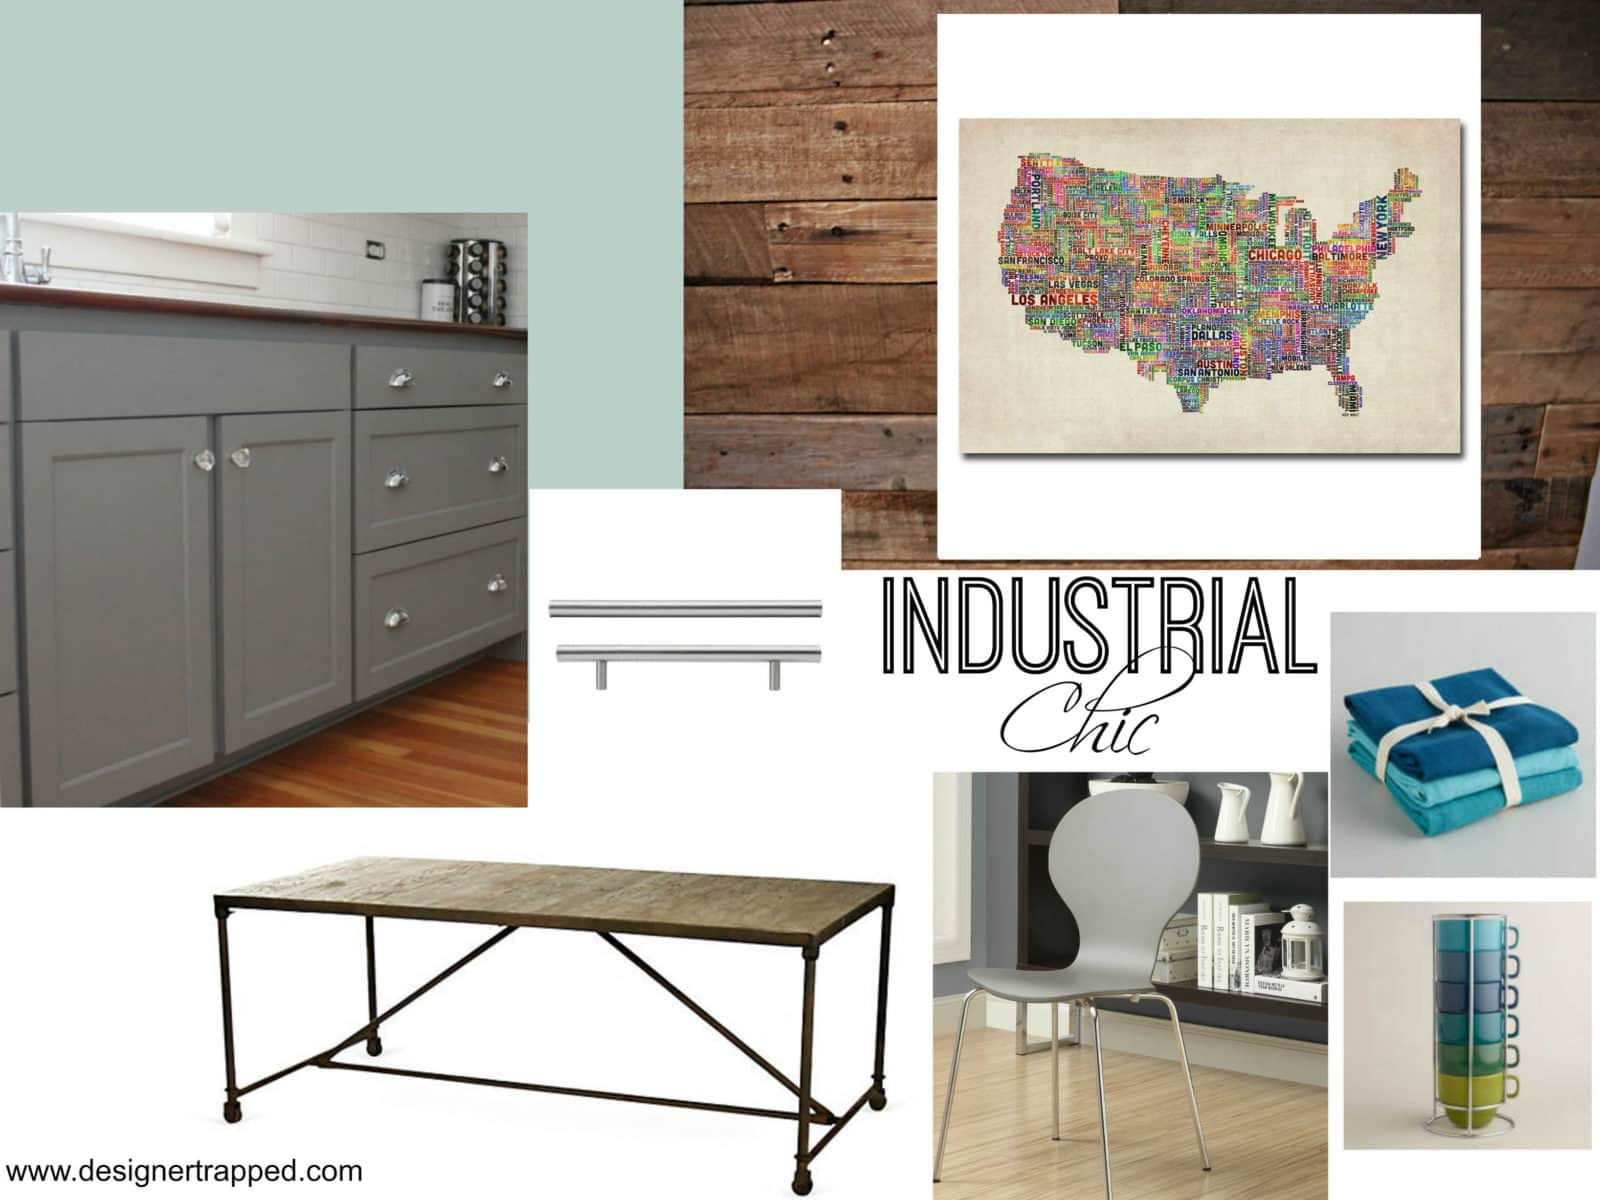 Kitchen Makeover Plans by Designer Trapped in a Lawyer's Body {designertrapped.com}